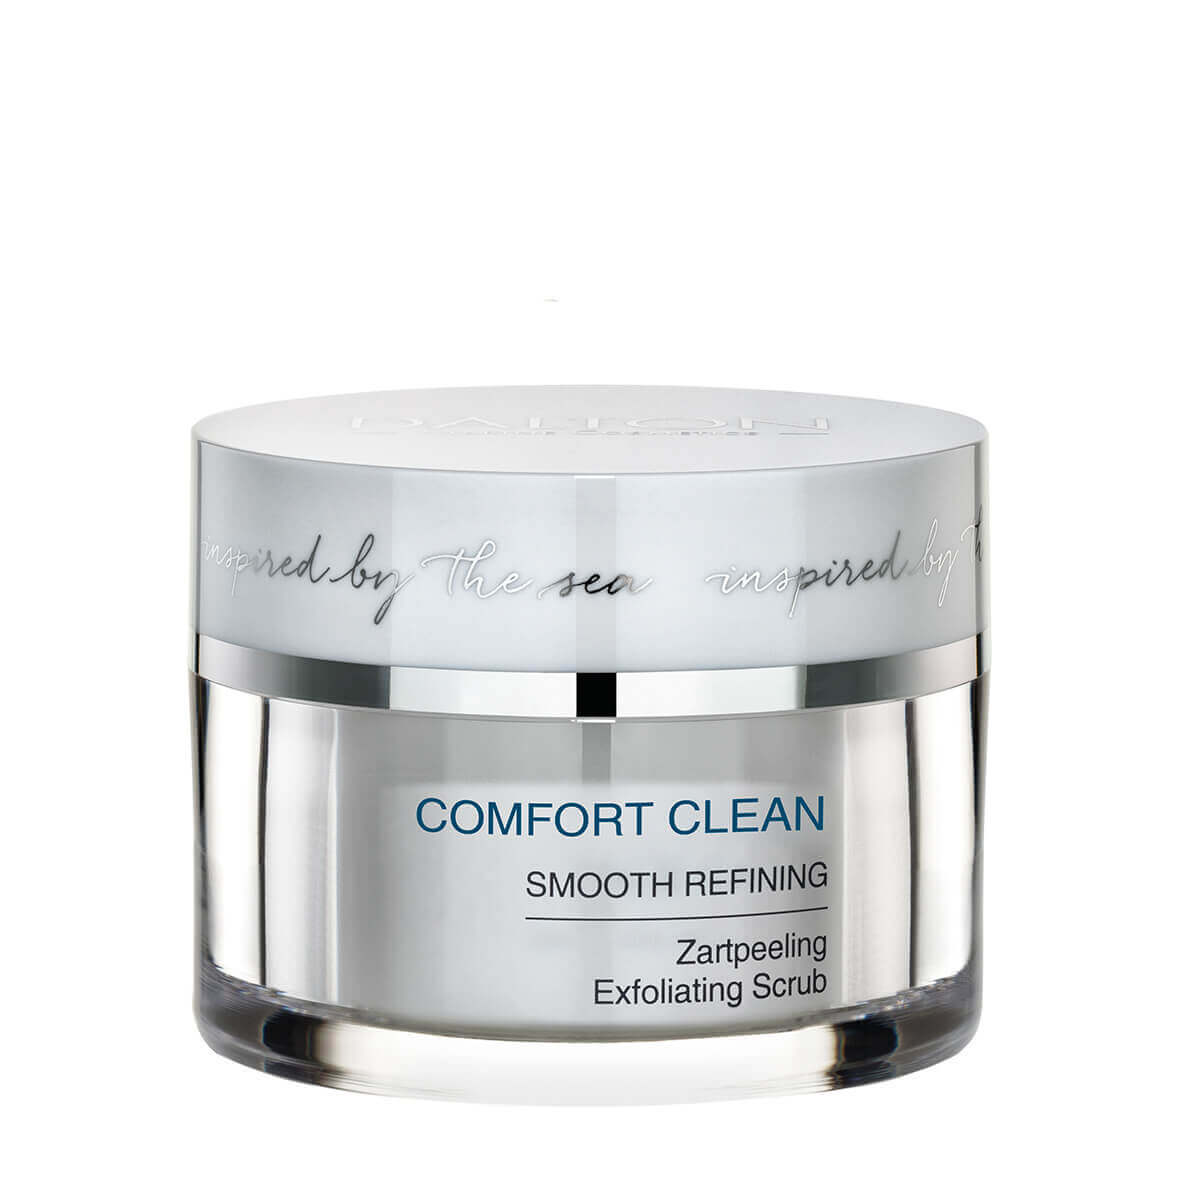 Comfort Clean Exfoliating Scrub 50ml.